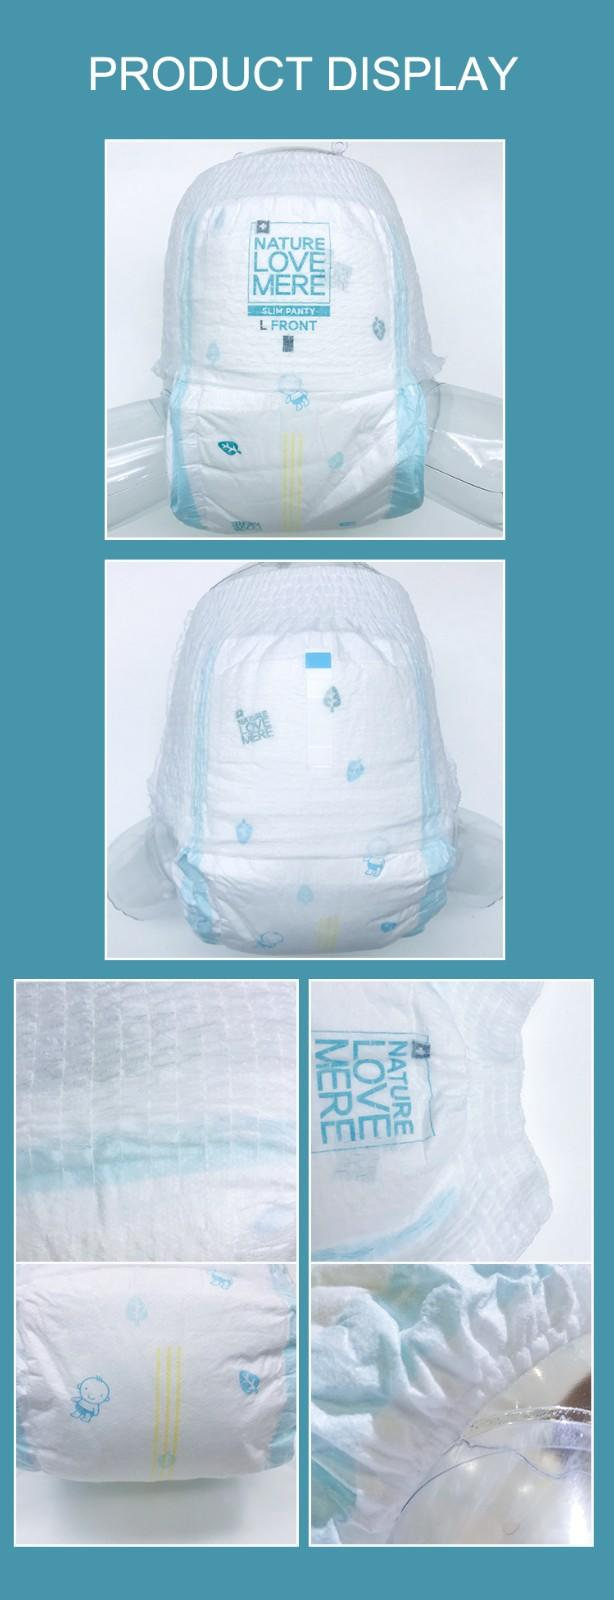 breathable baby diaper price softcare for baby